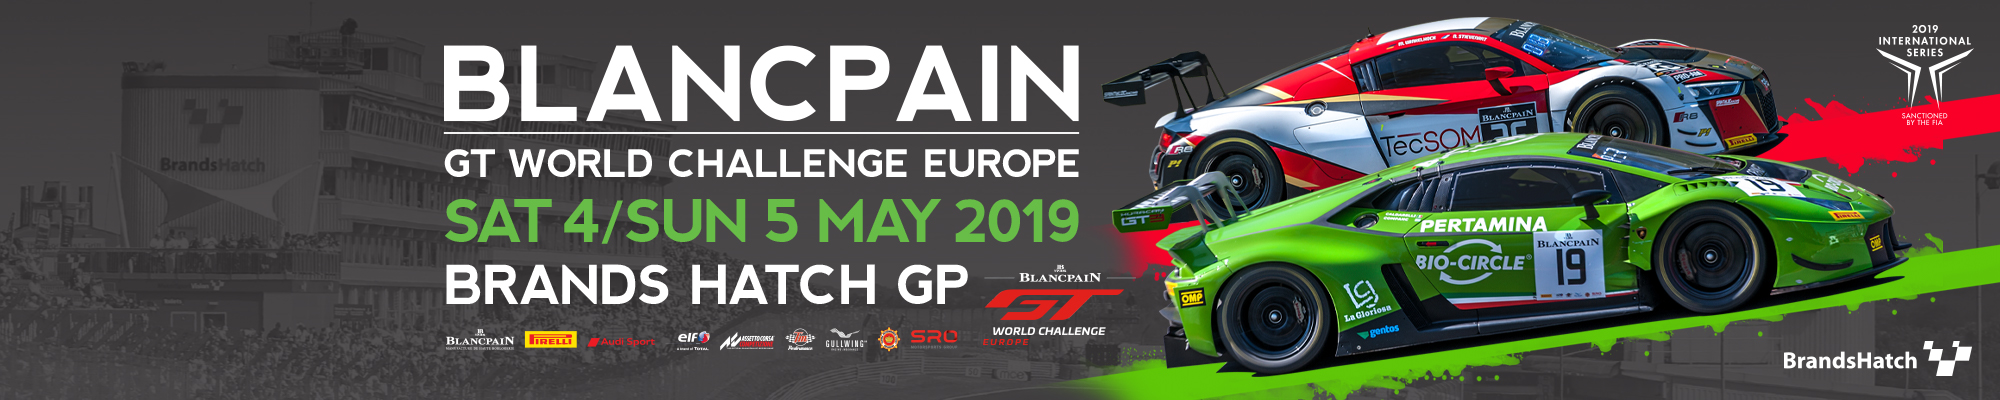 Blancpain GT World Challenge Europe